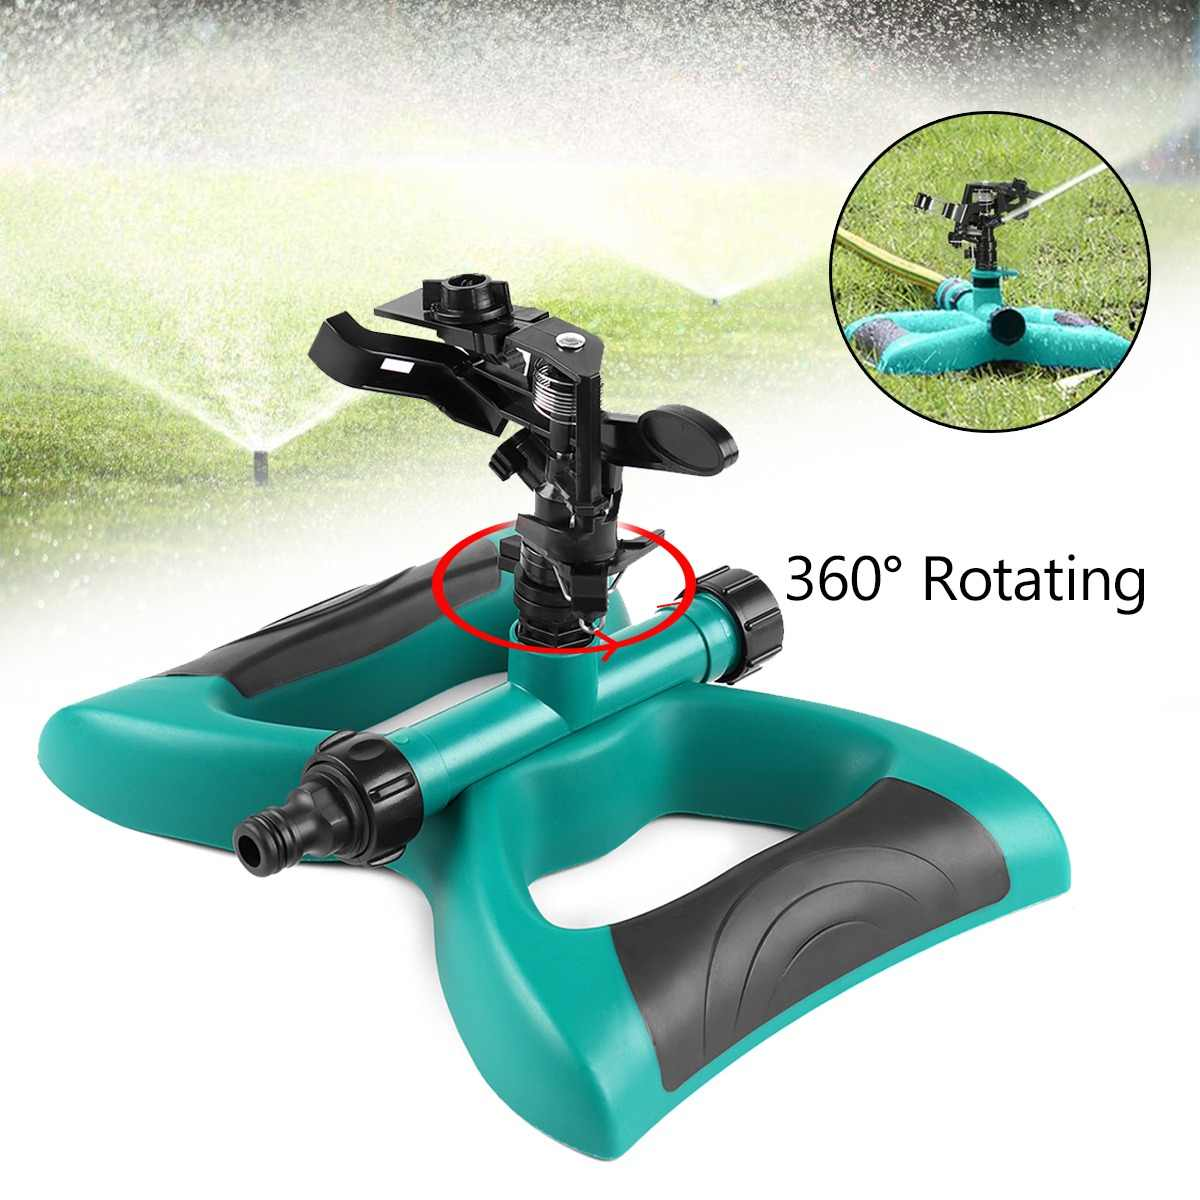 Garden Rotating Sprinkler Watering Systems 360 Degree Lawn Sprinkler Garden Plant Yard Rotation Irrigation System Self Watering